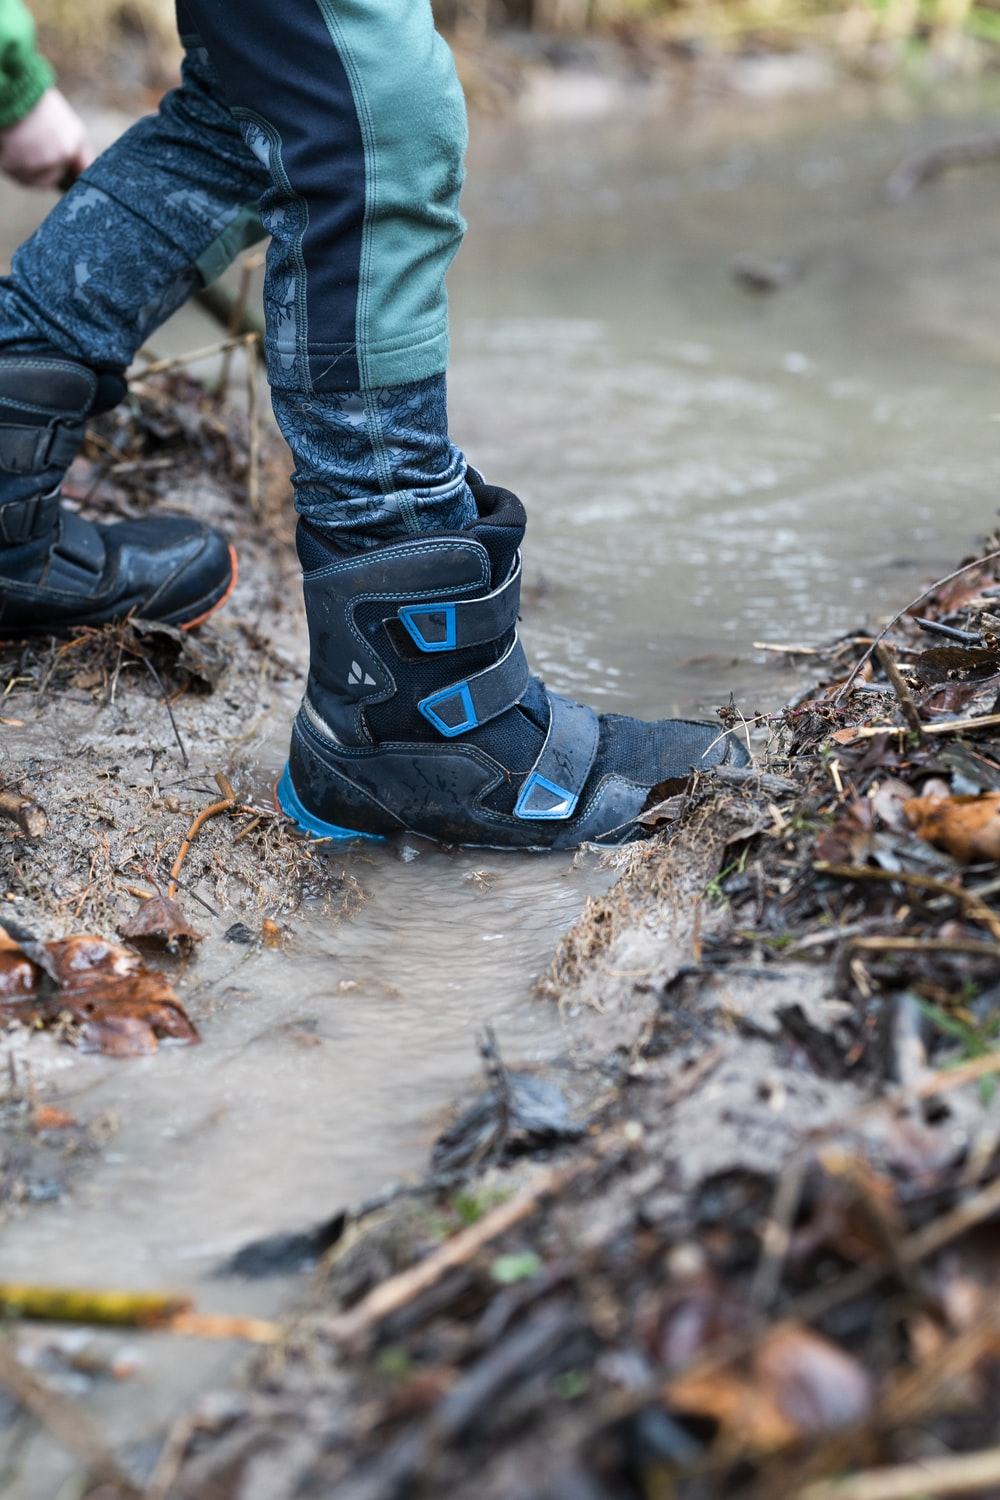 blue-and-black snow boots